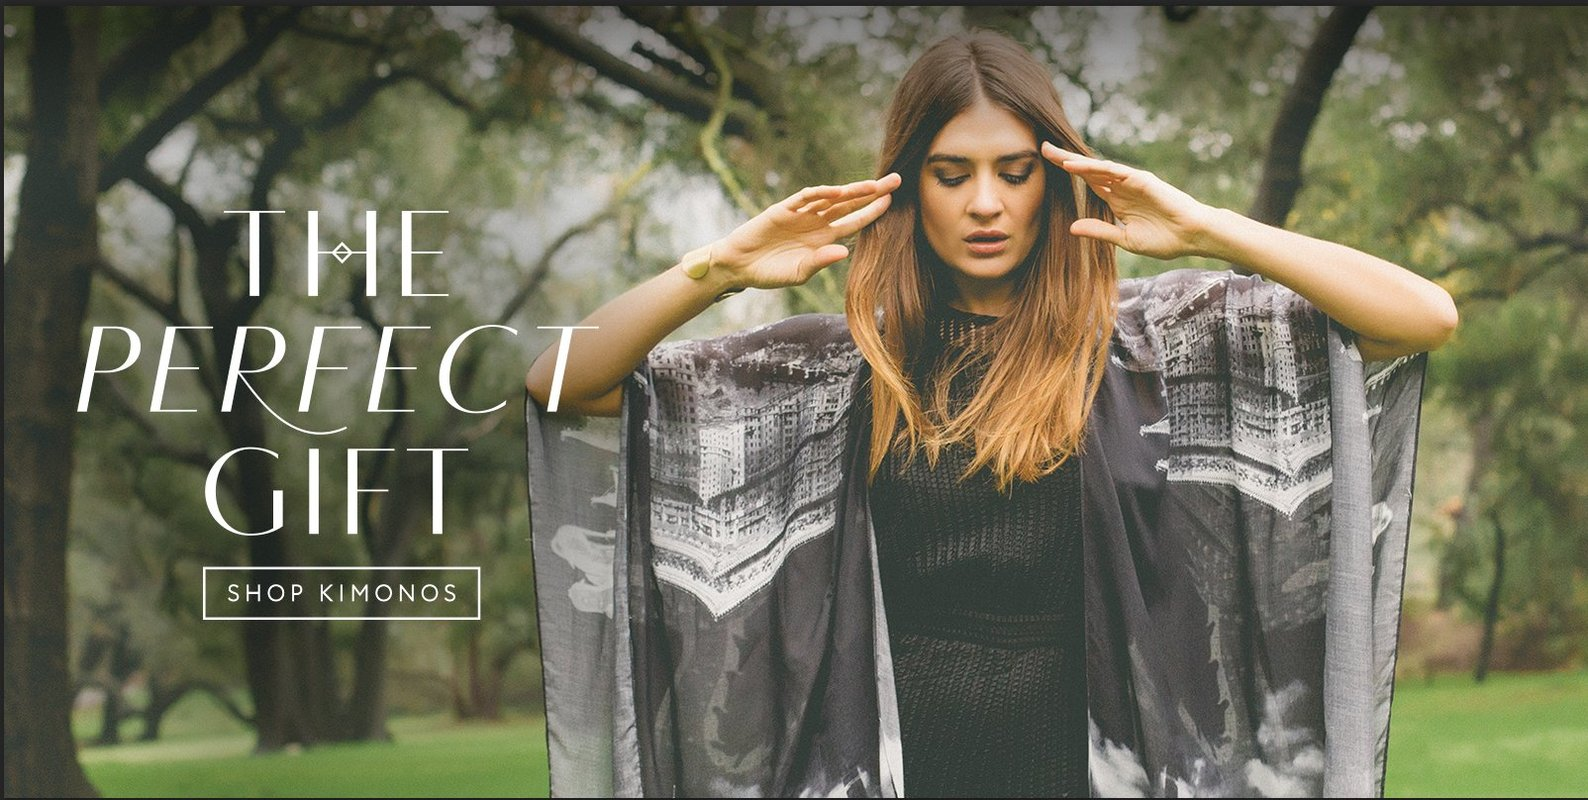 Kimonos, scarves and cover-ups designed to electrify the adventuress within. Globally inspired, photographic prints. Free global shipping.